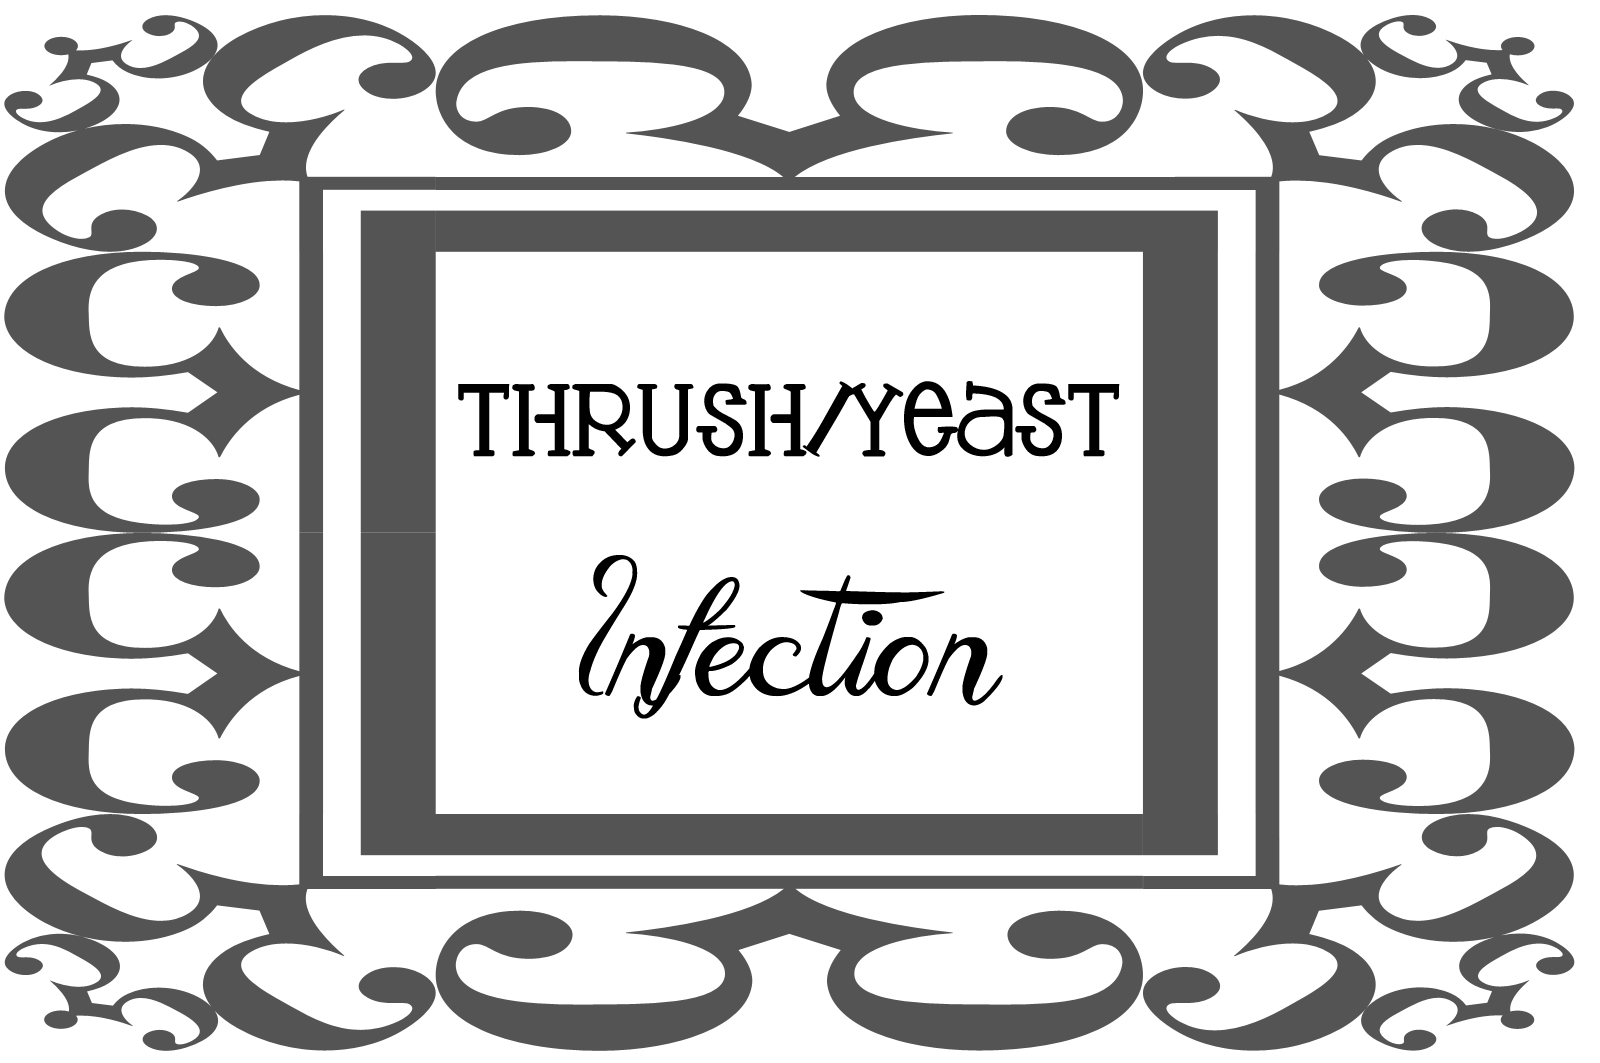 Thrush/Yeast Infection